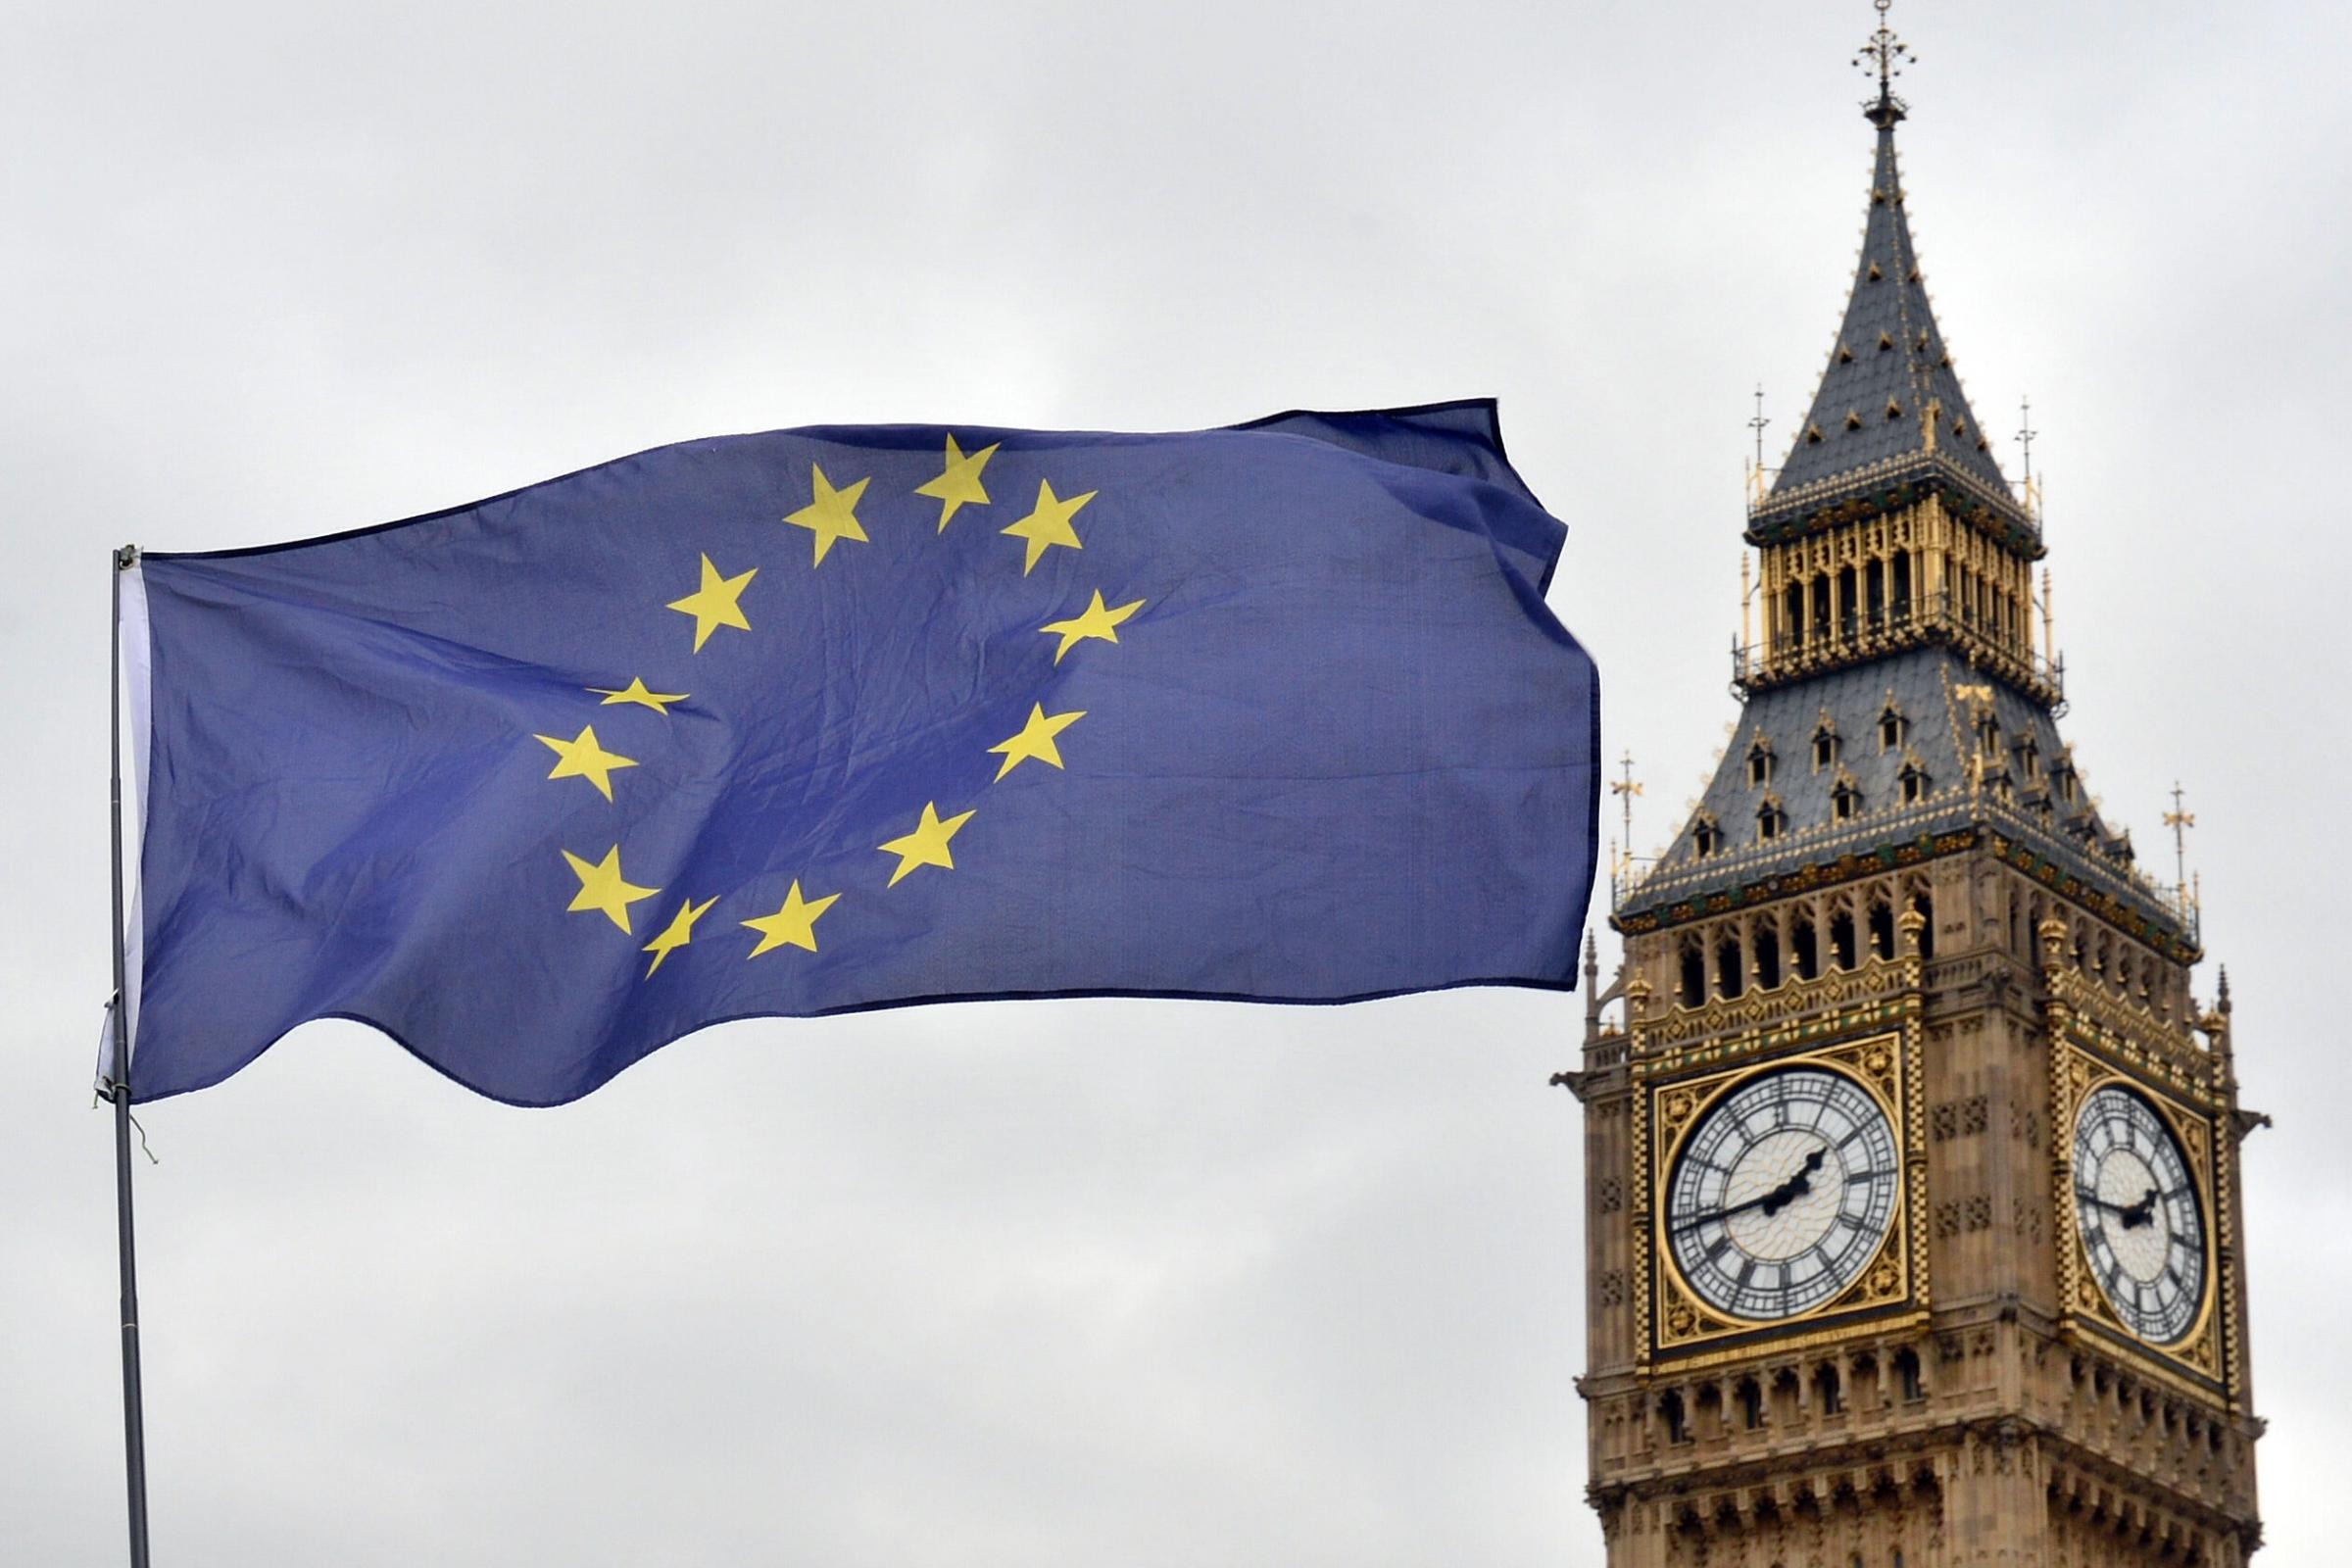 A BBC journalist has perfectly summed up how many people feel about Brexit